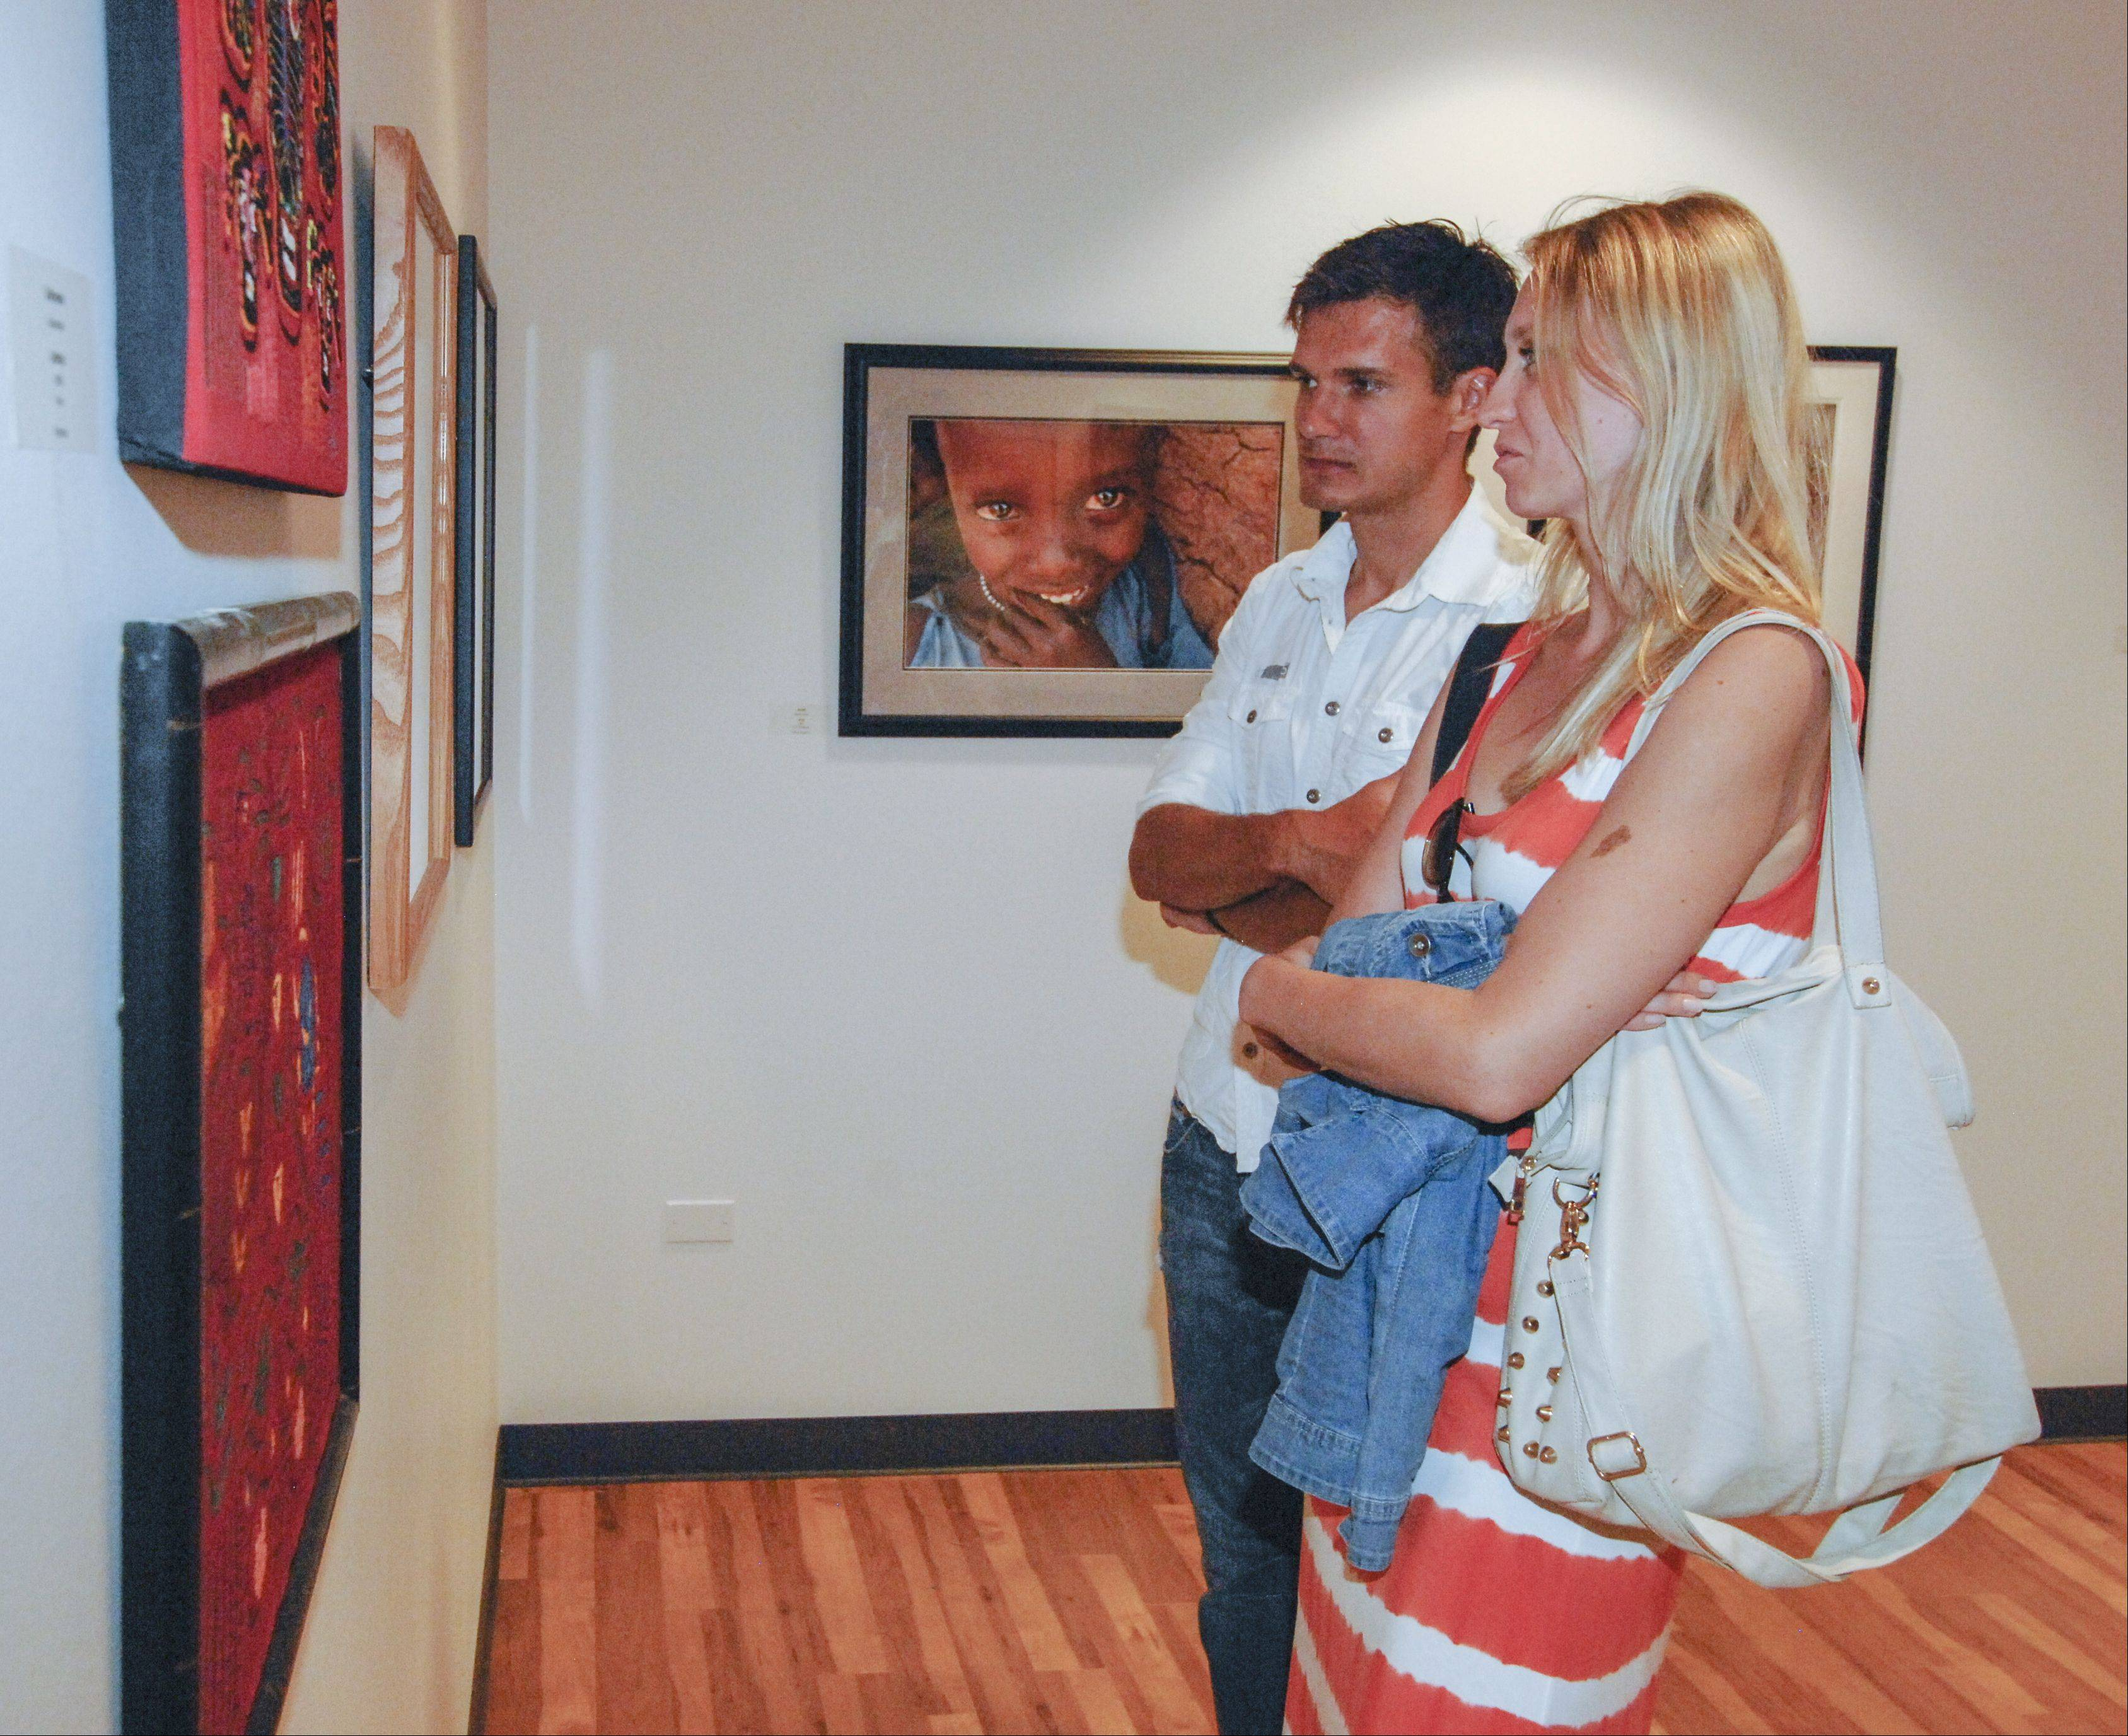 Pawel Pioro and Isavela Mieszcanska, who is a Benedictine University alumni, view the art on display Sunday during the dedication of the new Fr. Michael E. Komechak Art Gallery on the school's Lisle campus.